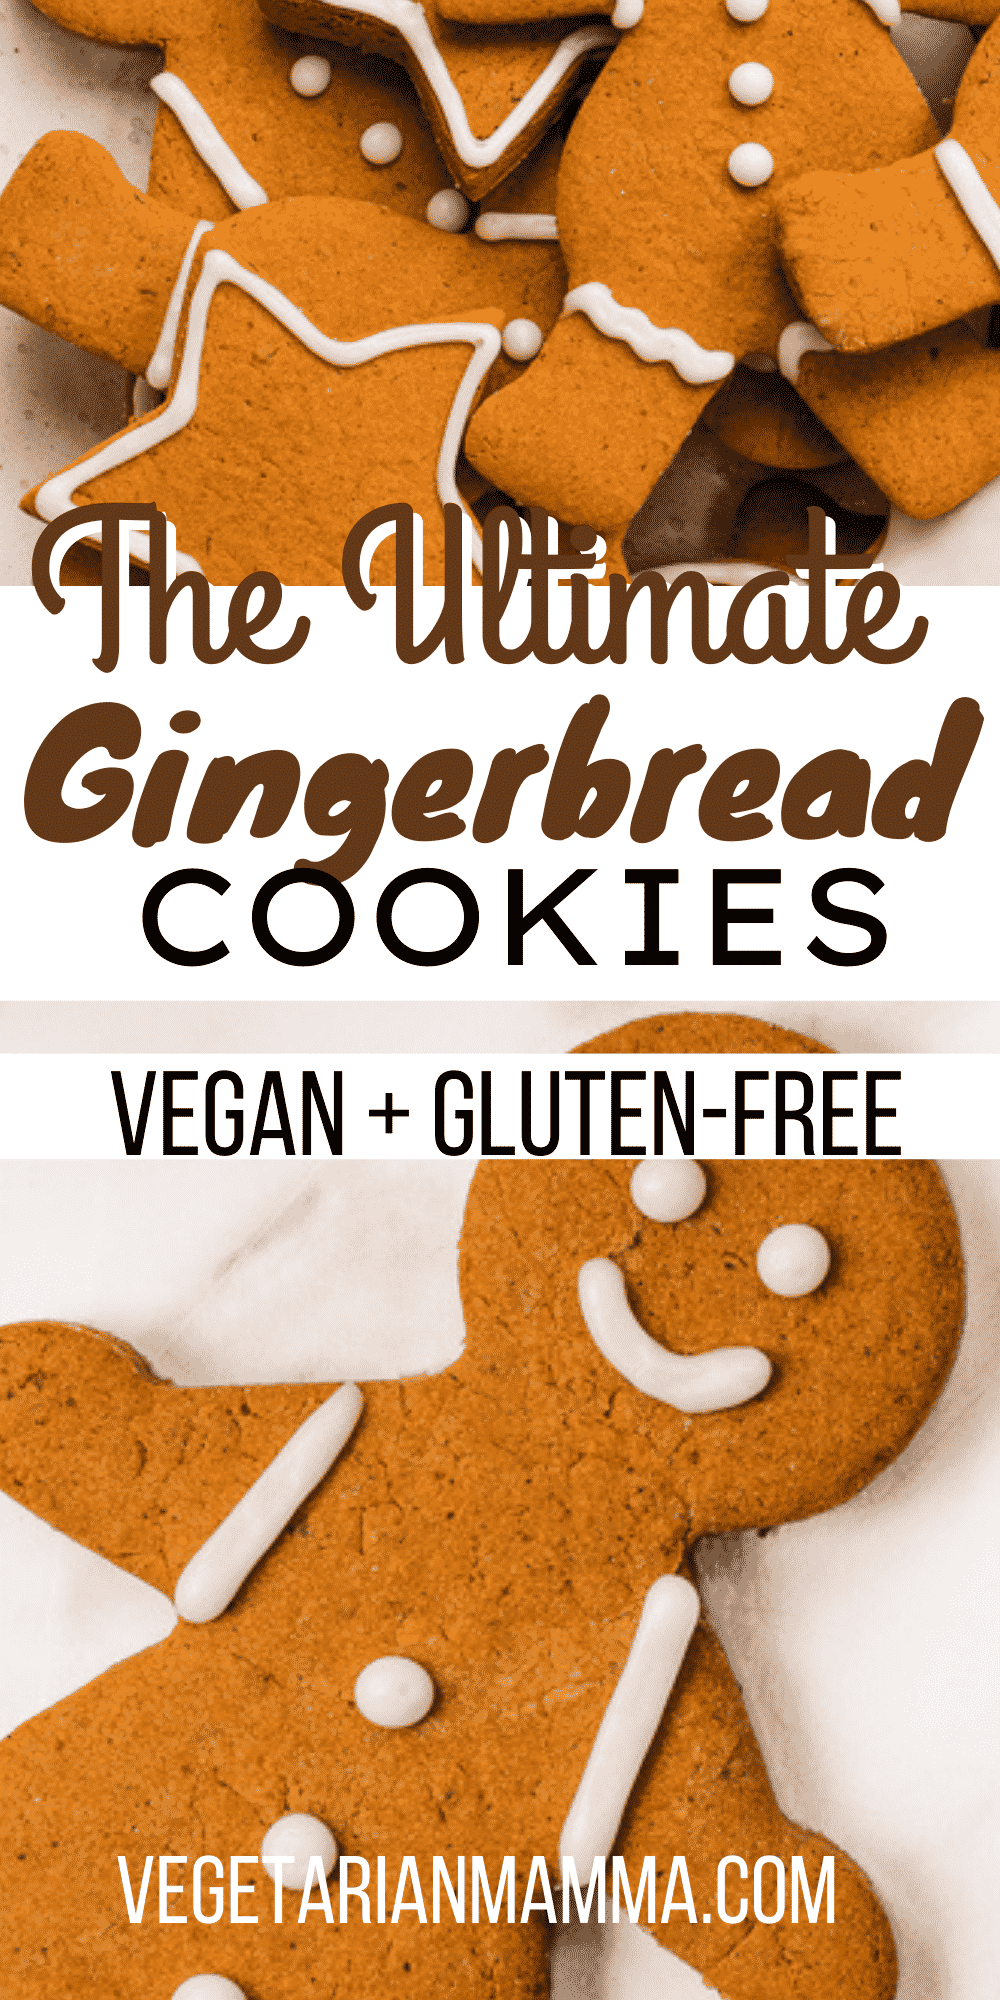 Vegan Gingerbread Cookies are the ultimate Christmas cookies! Decorate them with this homemade vegan icing for the best holiday treat you can make together in just a few hours. #veganbaking #glutenfreecookies